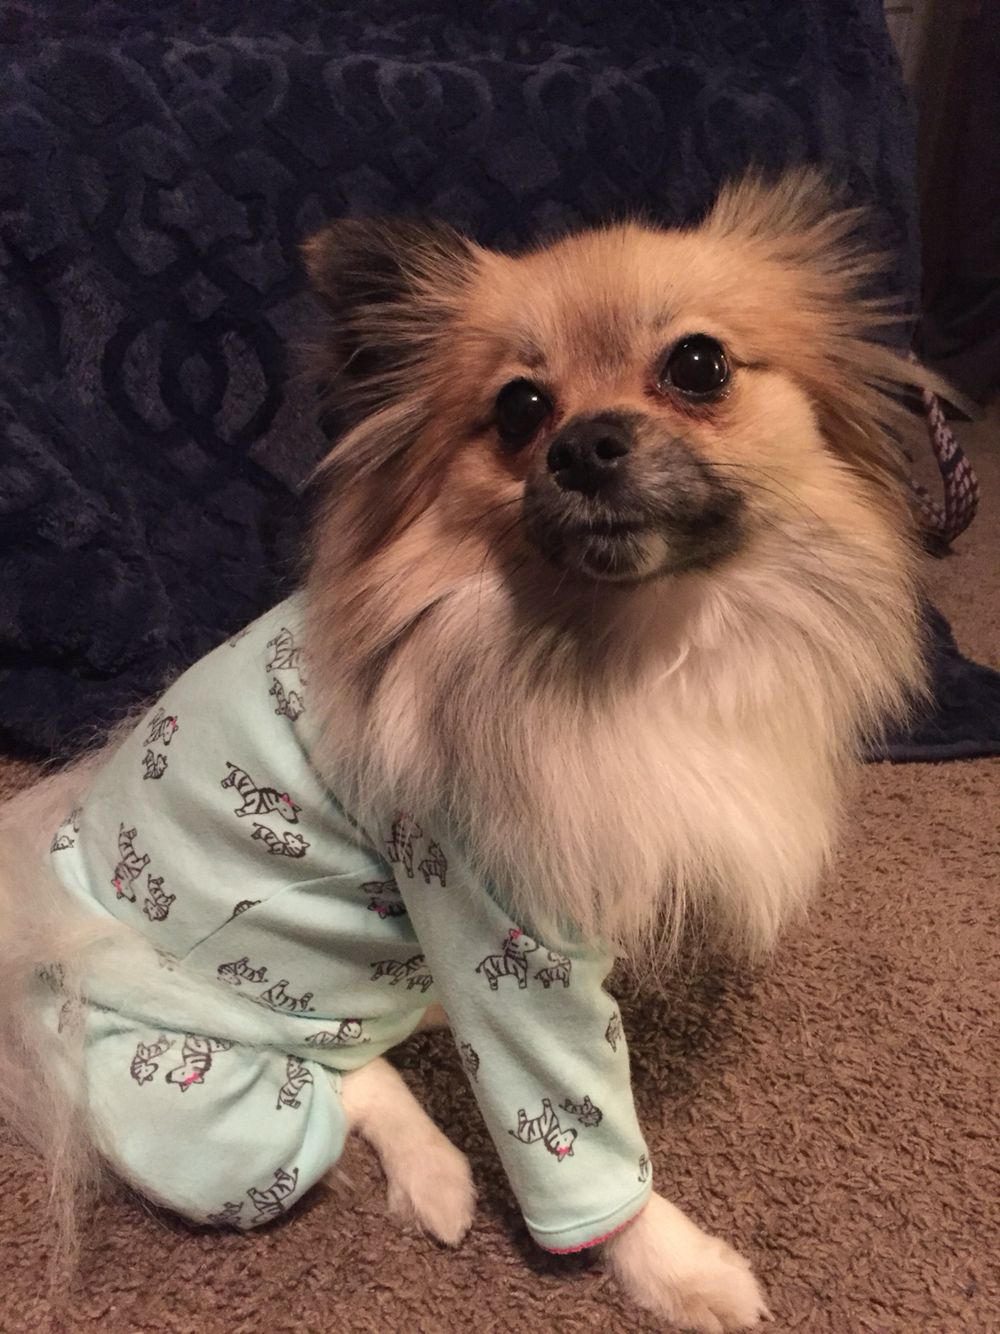 Lily the Pom in her PJ's!